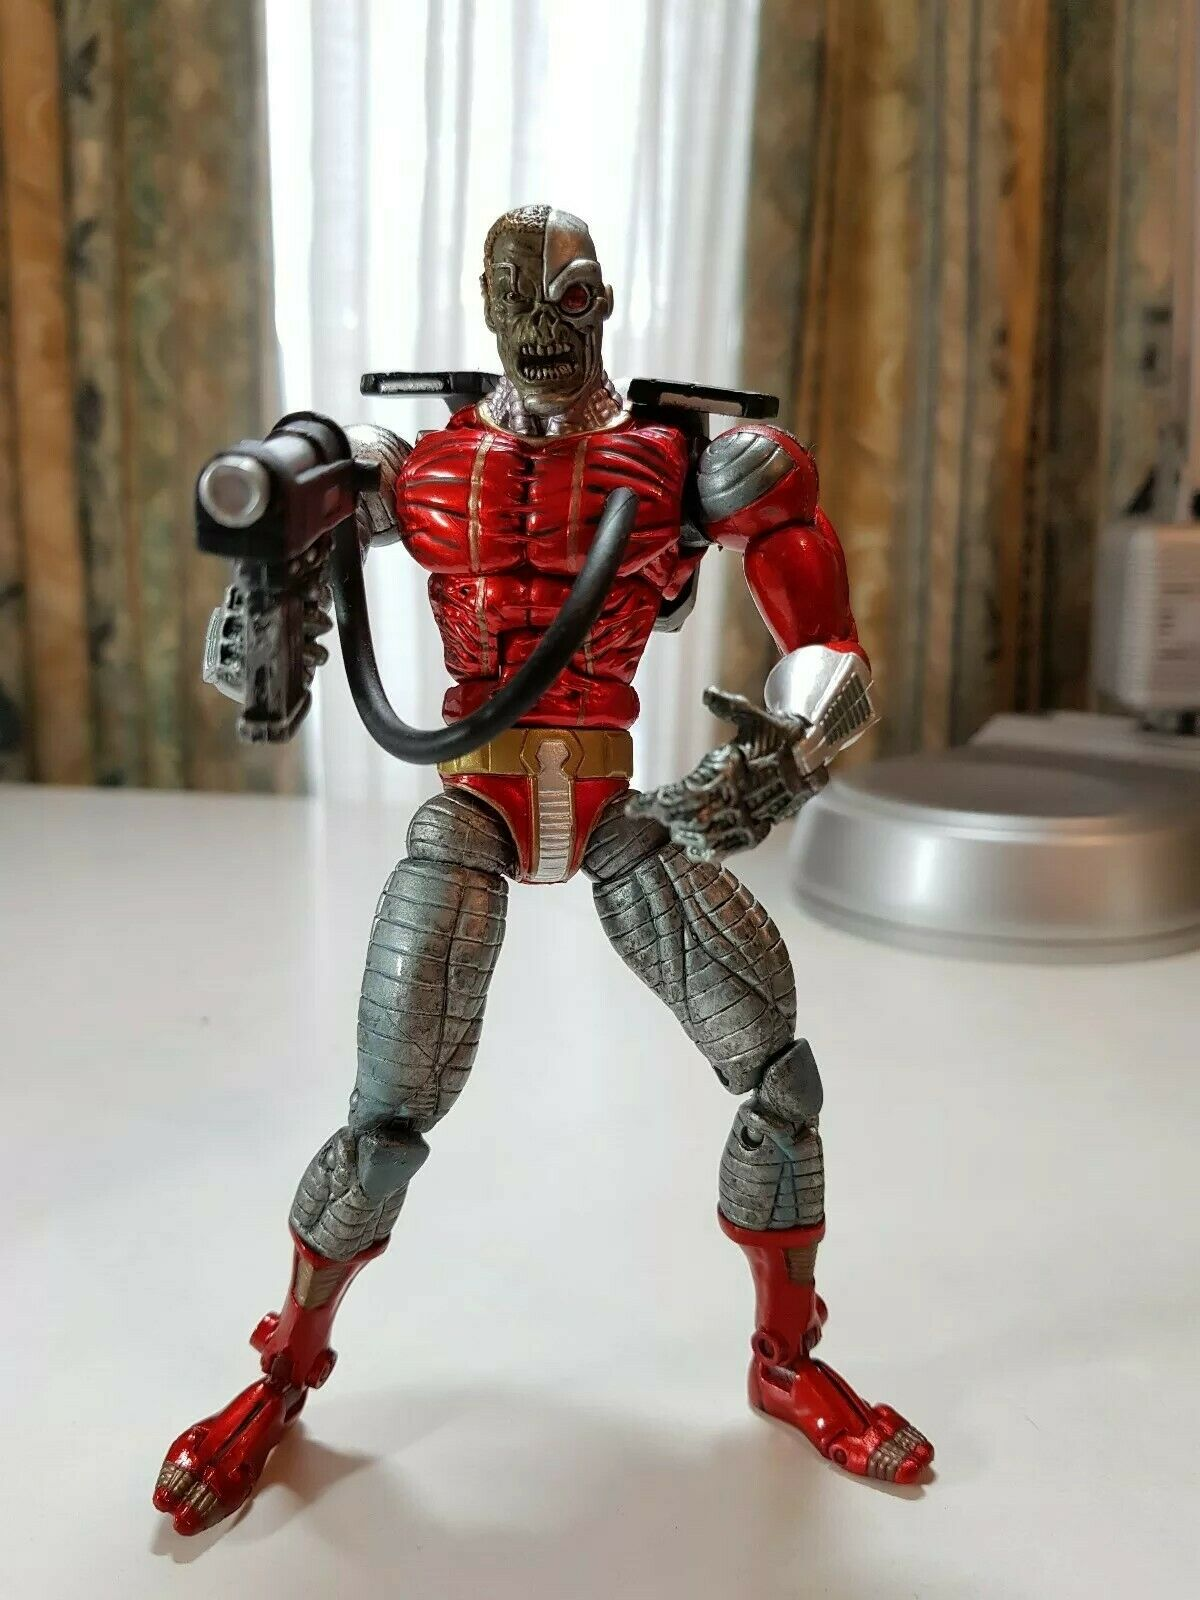 Marvel Legends Series IX Deathlok figure